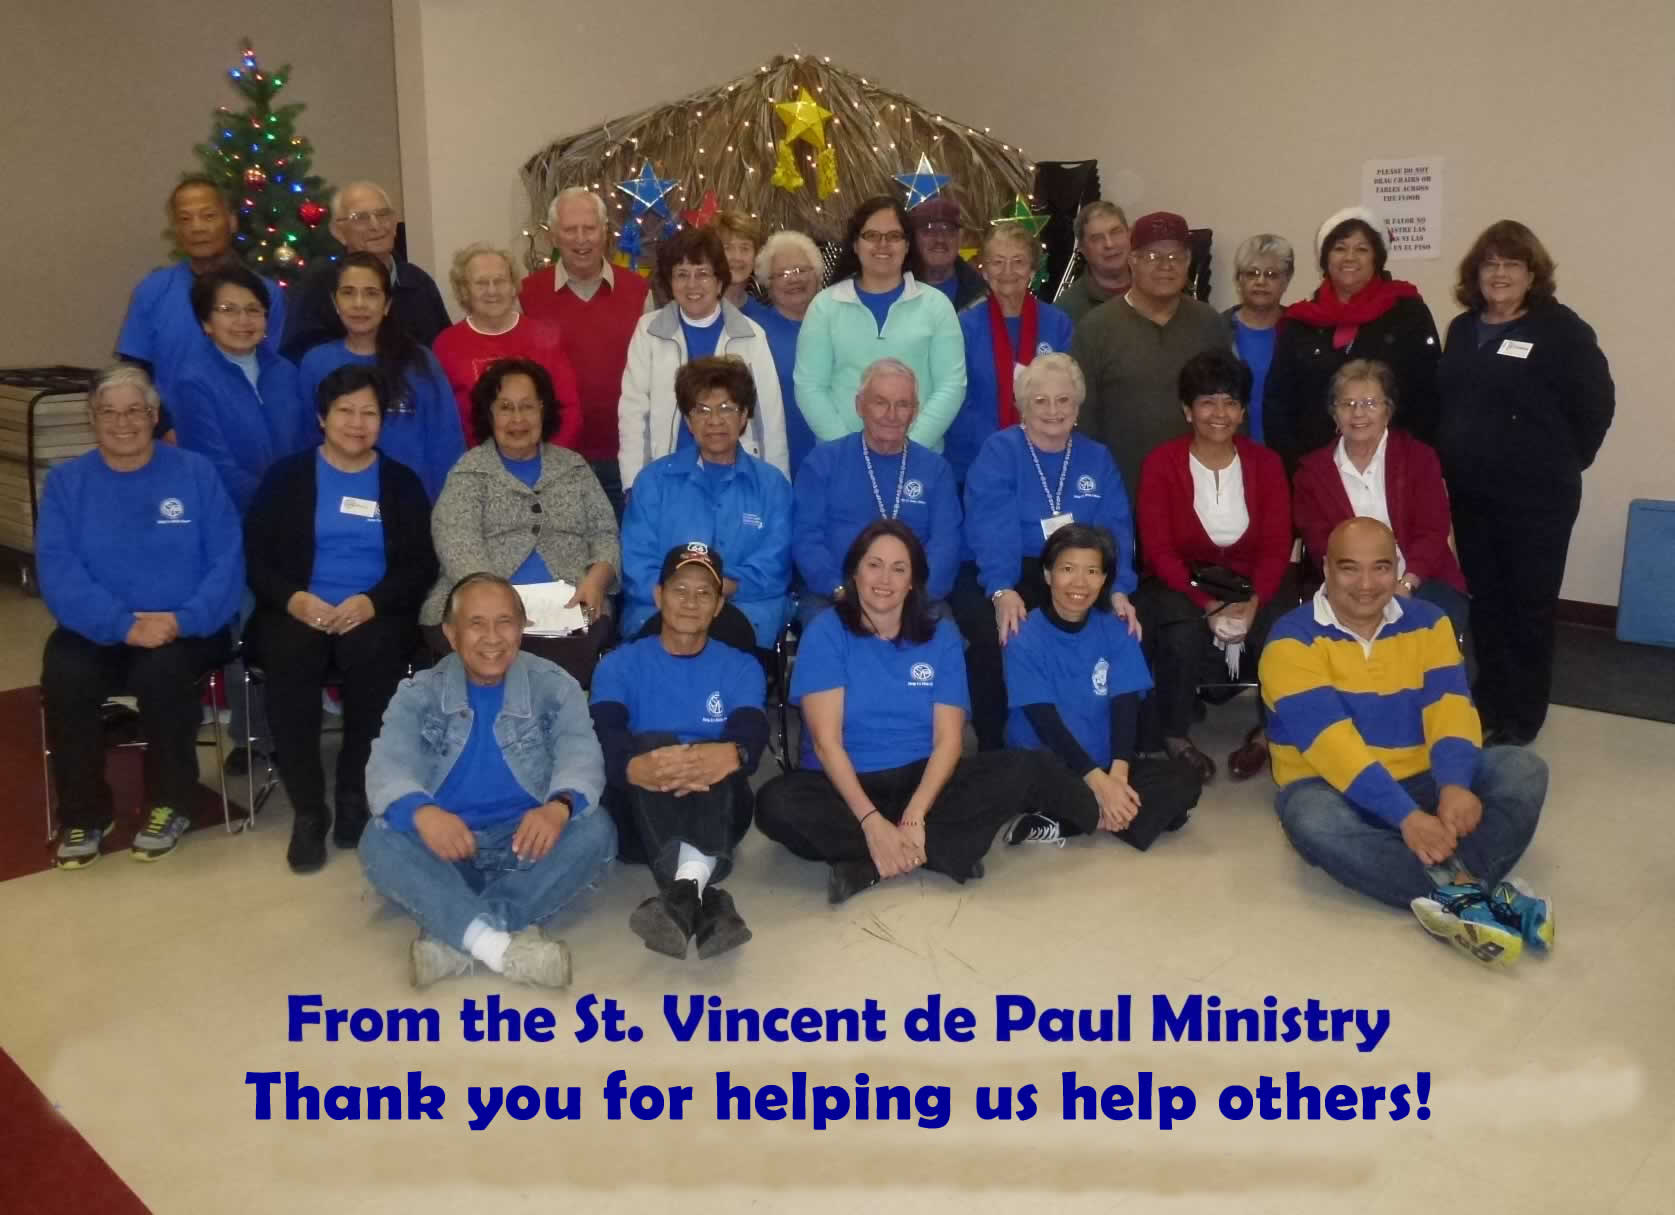 Food Pantry Immaculate Heart of Mary - St. Vincent de Paul